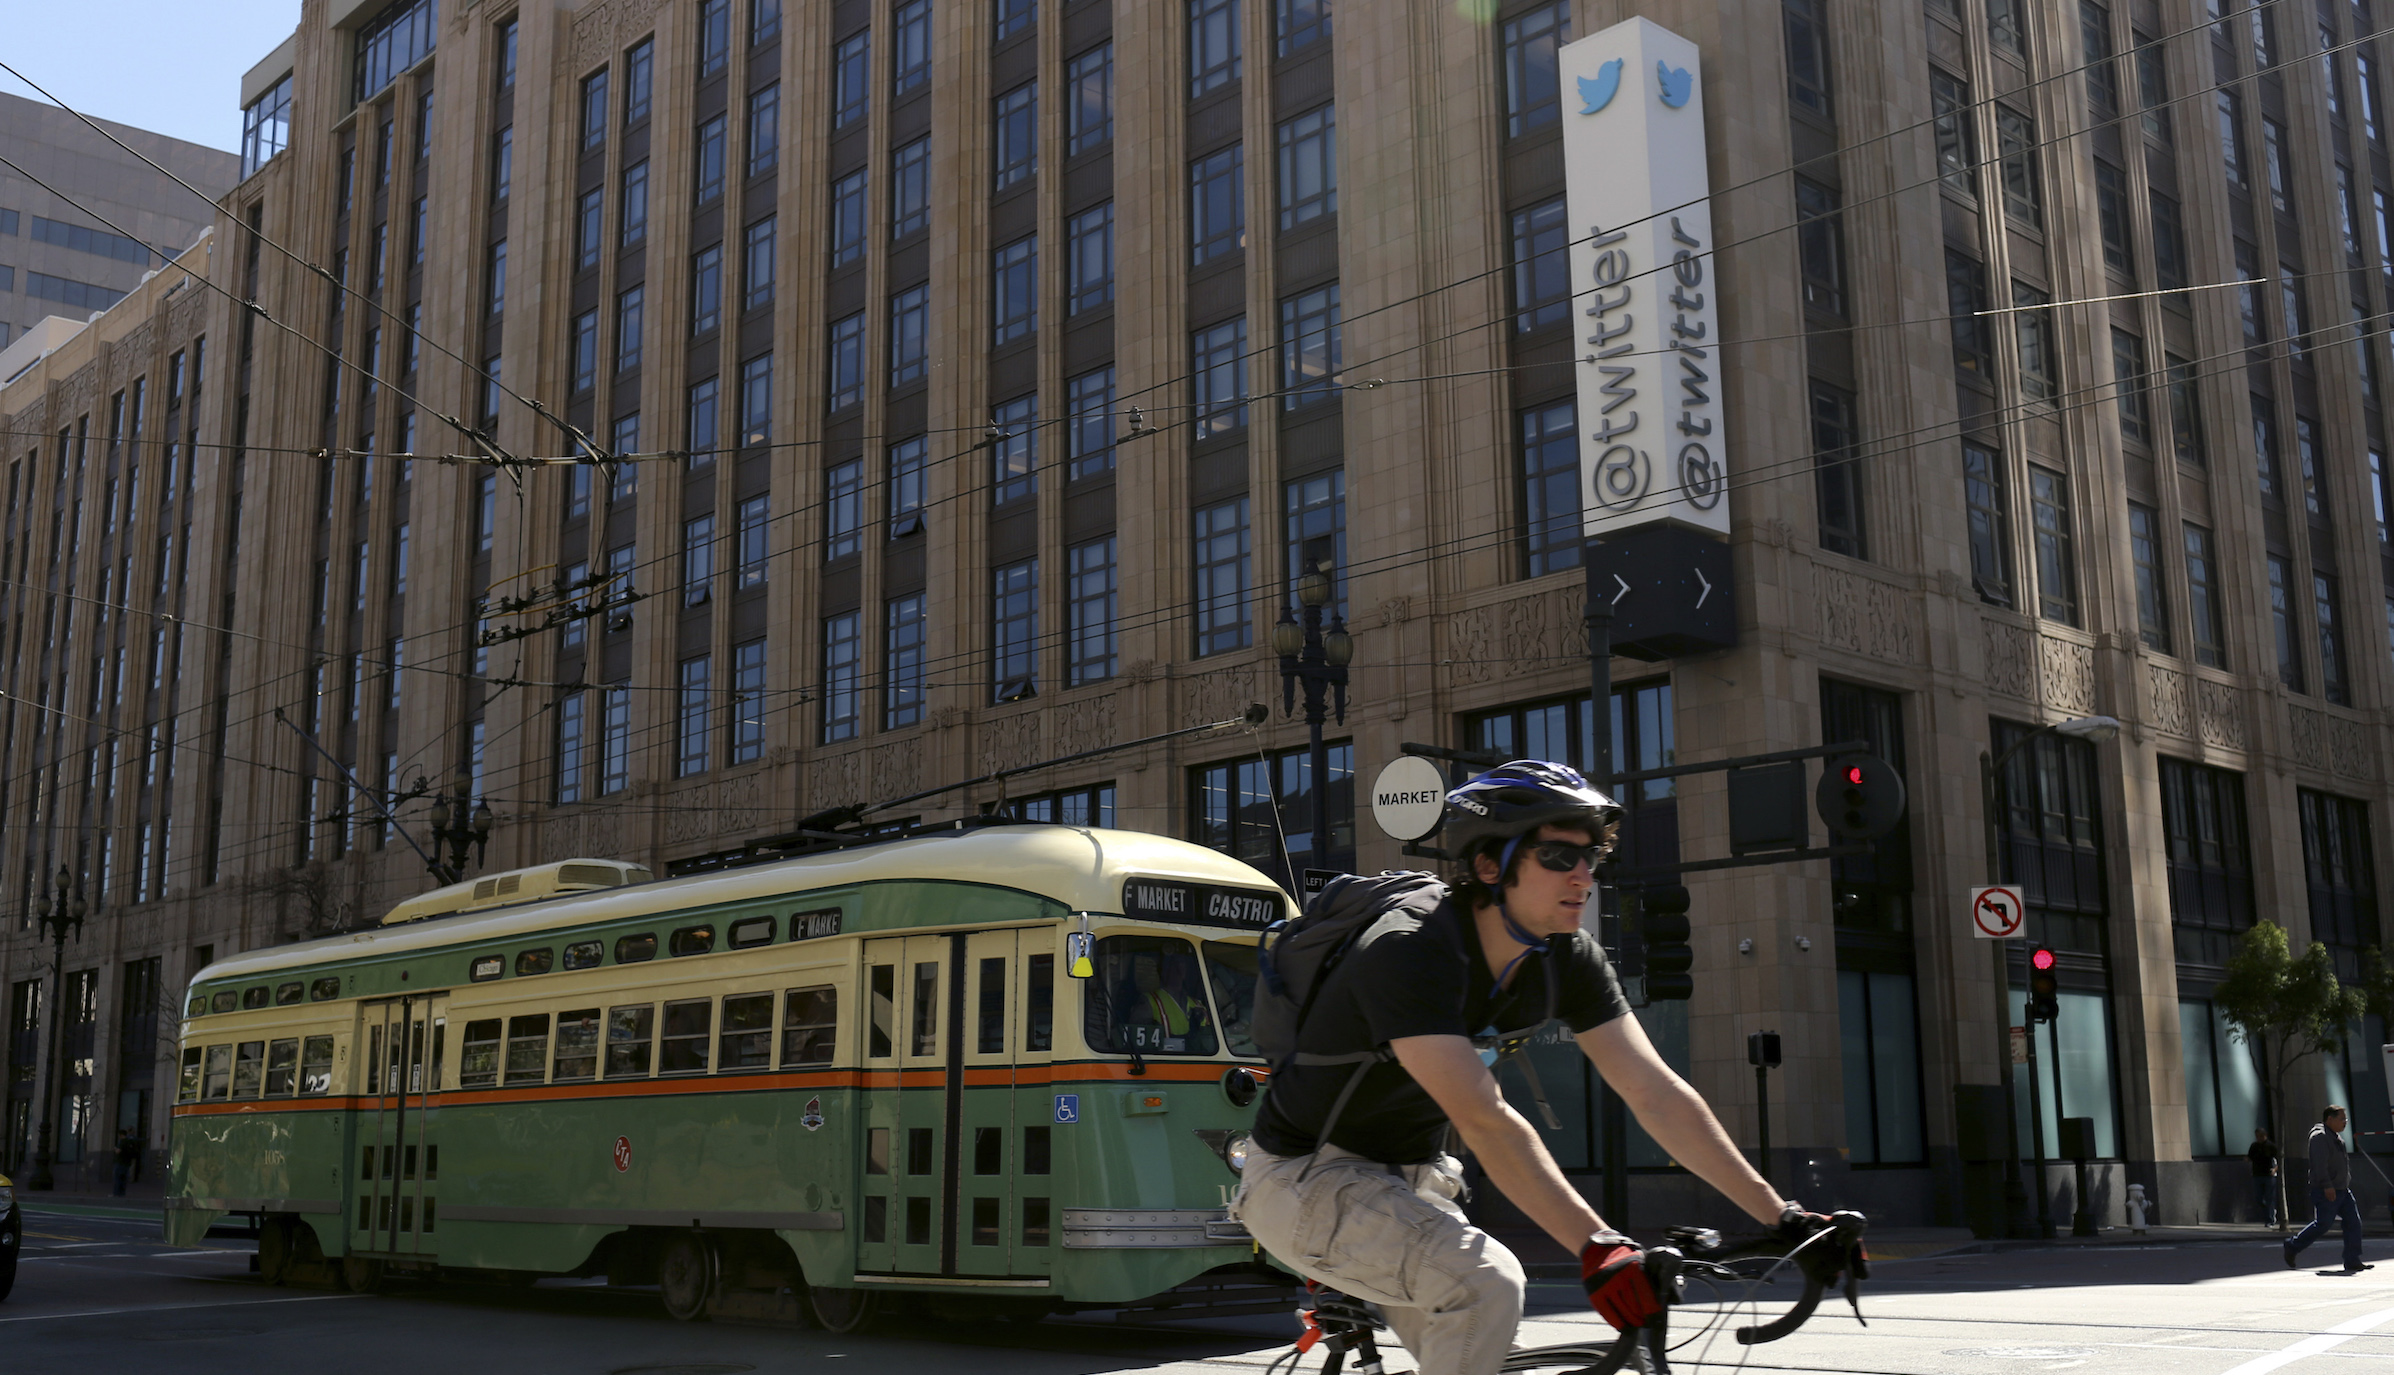 A vintage streetcar passes in front of the Twitter headquarters on Market Street in San Francisco, California April 29, 2014. The company is to report first quarter earnings after market close REUTERS/Robert Galbraith  (UNITED STATES - Tags: BUSINESS TRANSPORT LOGO SOCIETY) - RTR3N5H3